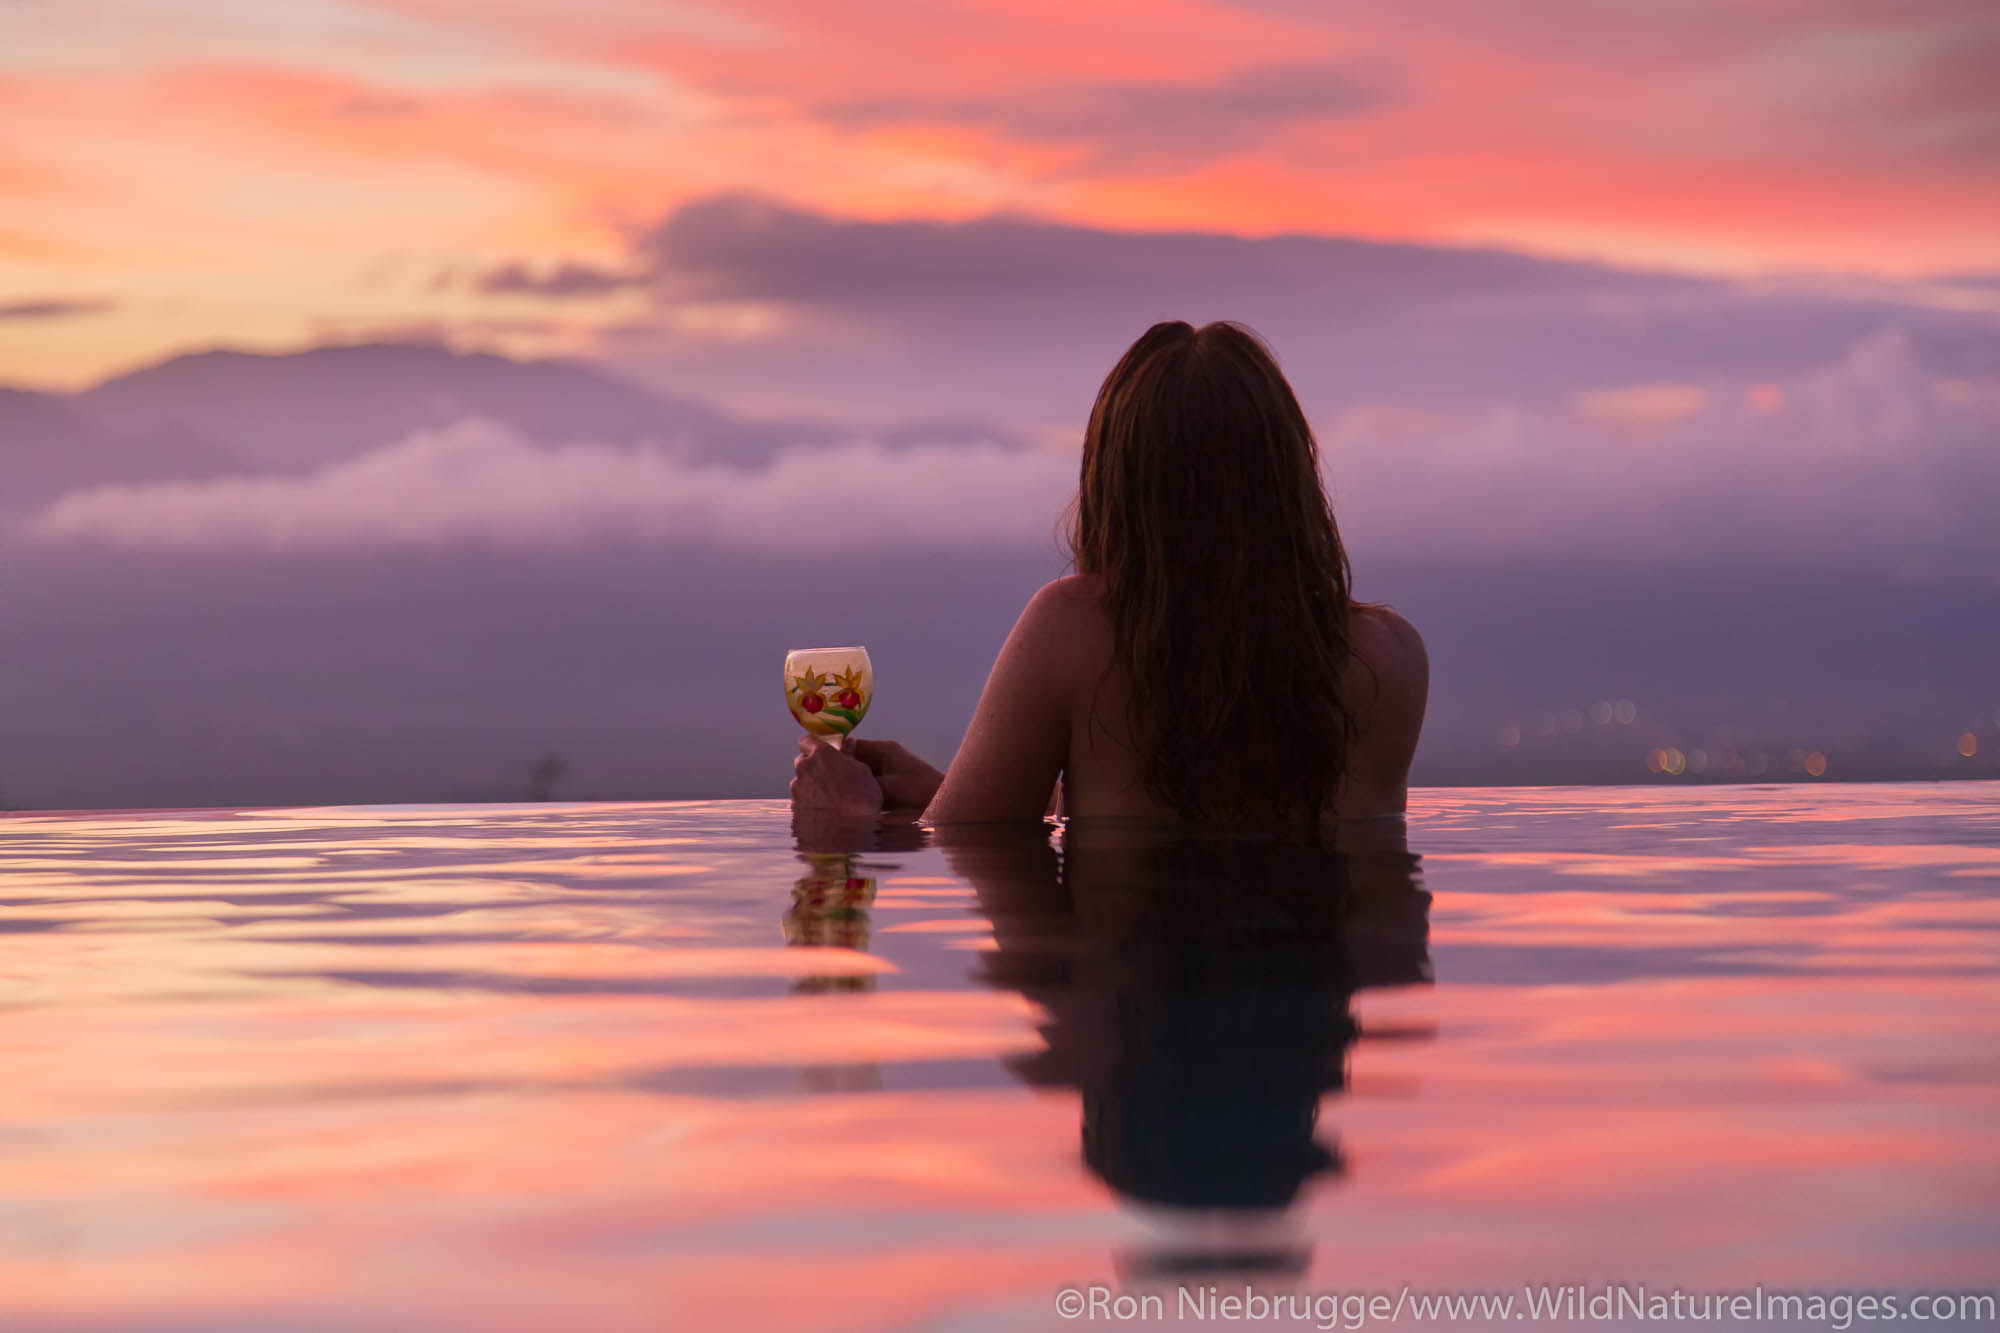 A visitor enjoying sunset from an infinitely pool, Maui, Hawaii.  (model released)